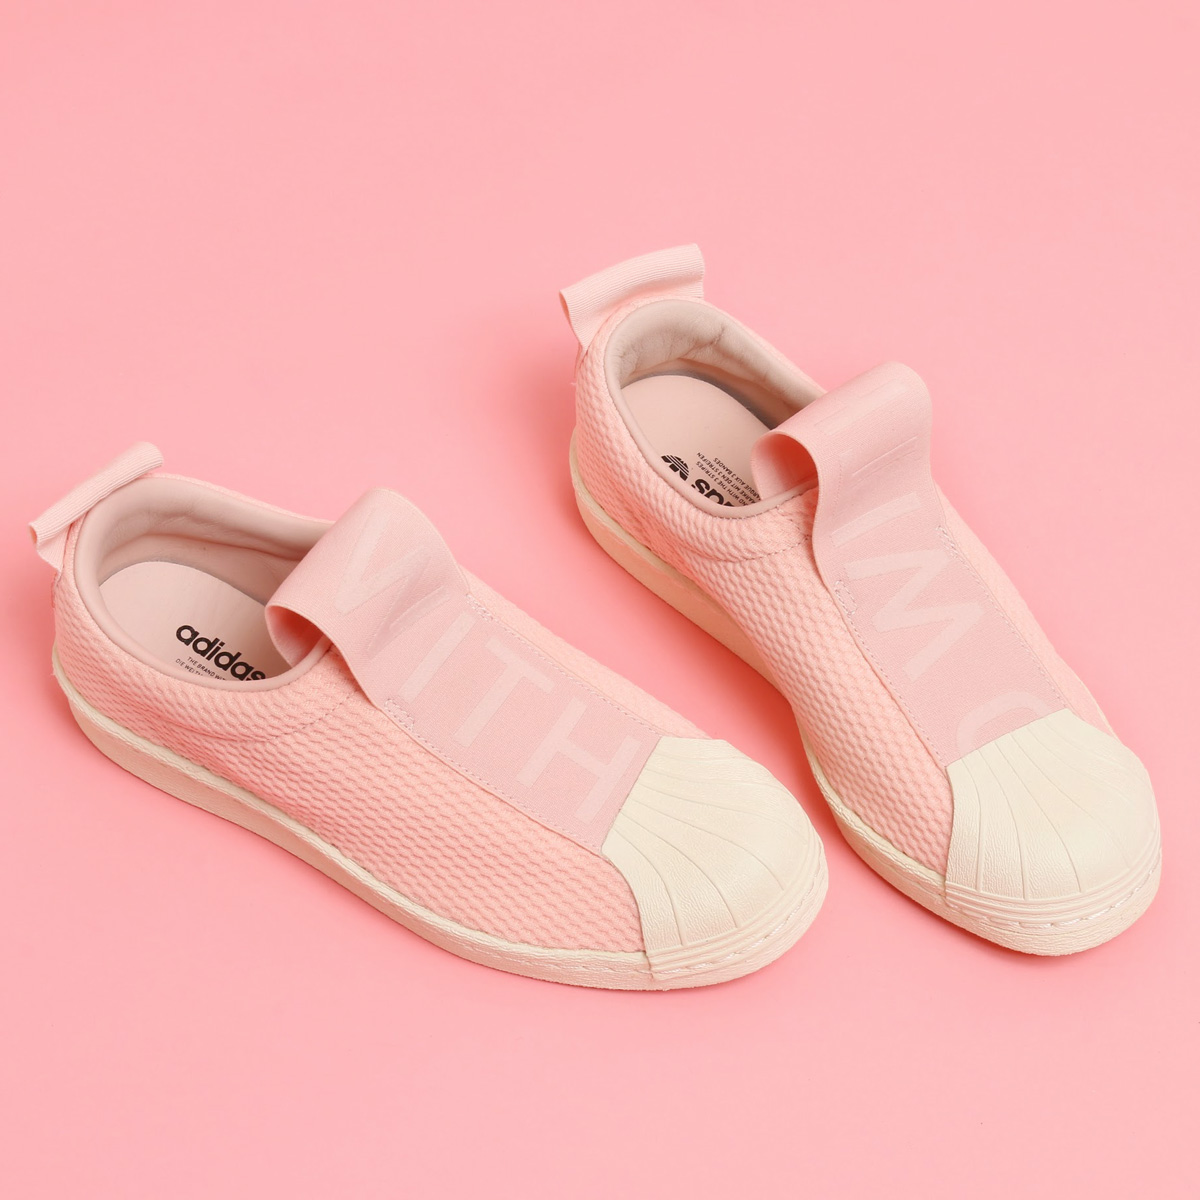 3fb6a8d714 adidas Originals SUPERSTAR BW35 SLIPON W (Adidas originals superstar slip- ons) (ICEY PINK ICEY PINK) 17FW-I